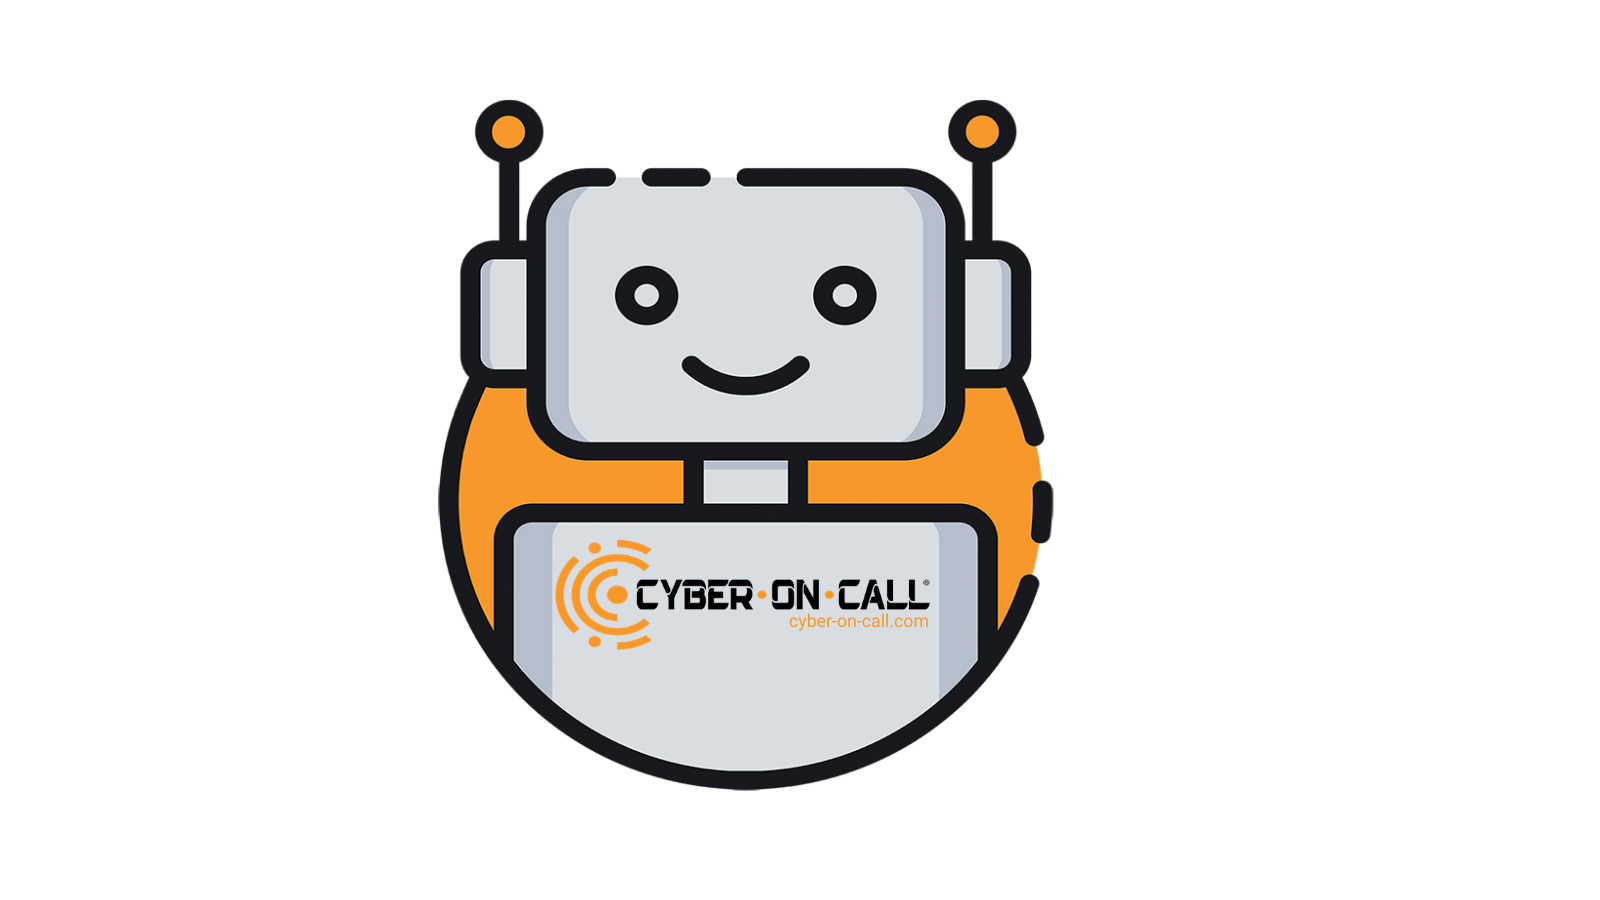 Cyber-On-Call Twitter